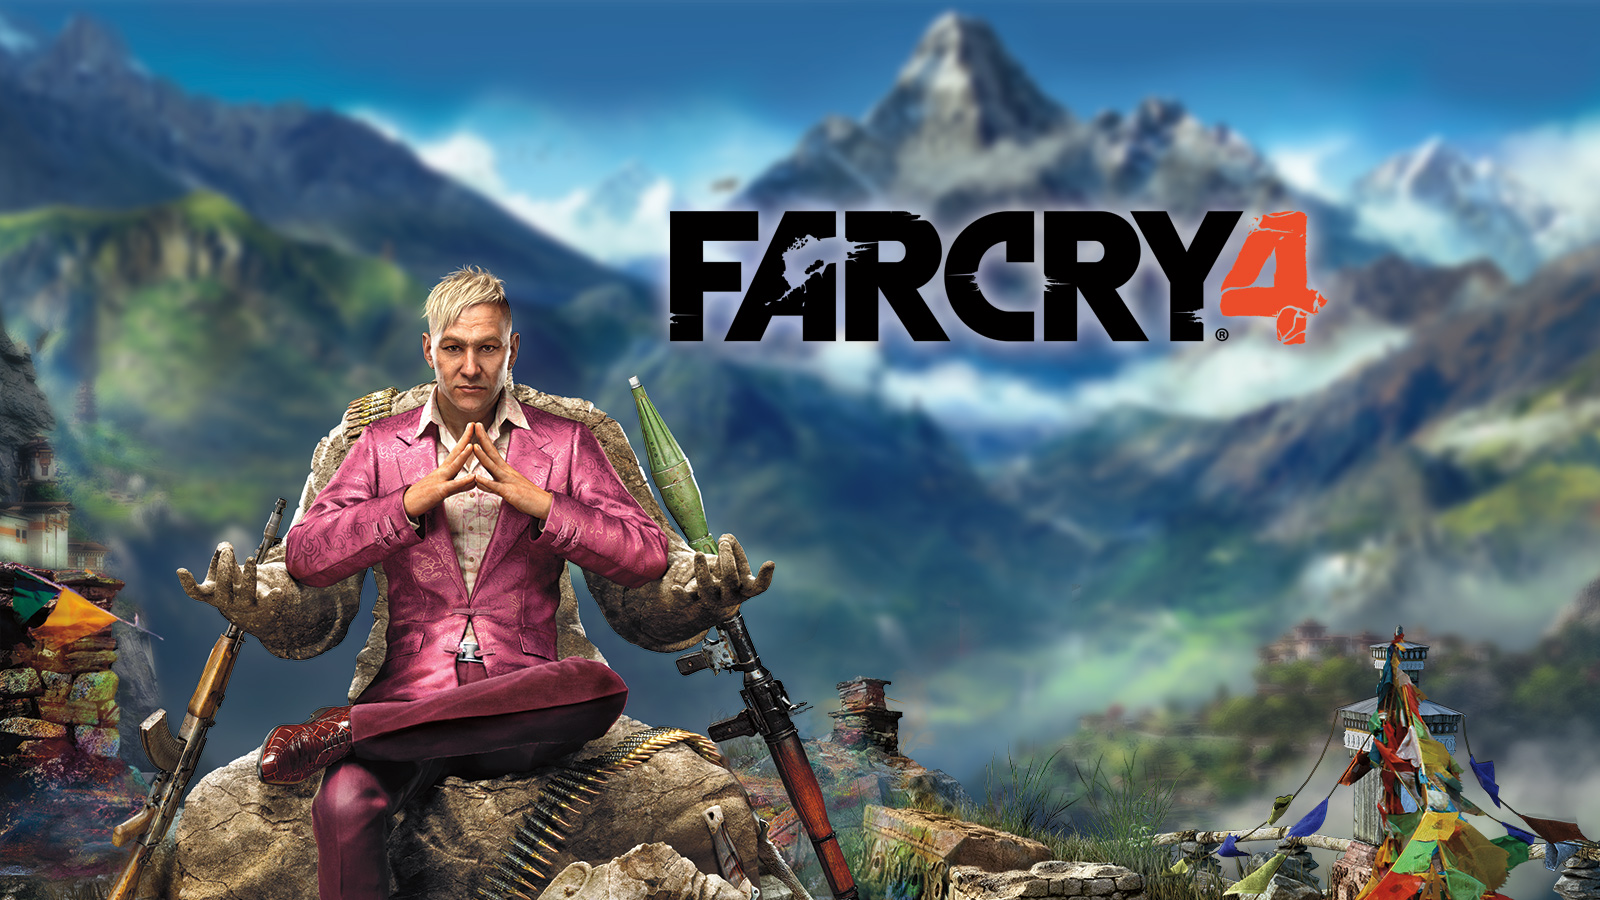 Watch the Far Cry 4 Come out as a King Story trailer here